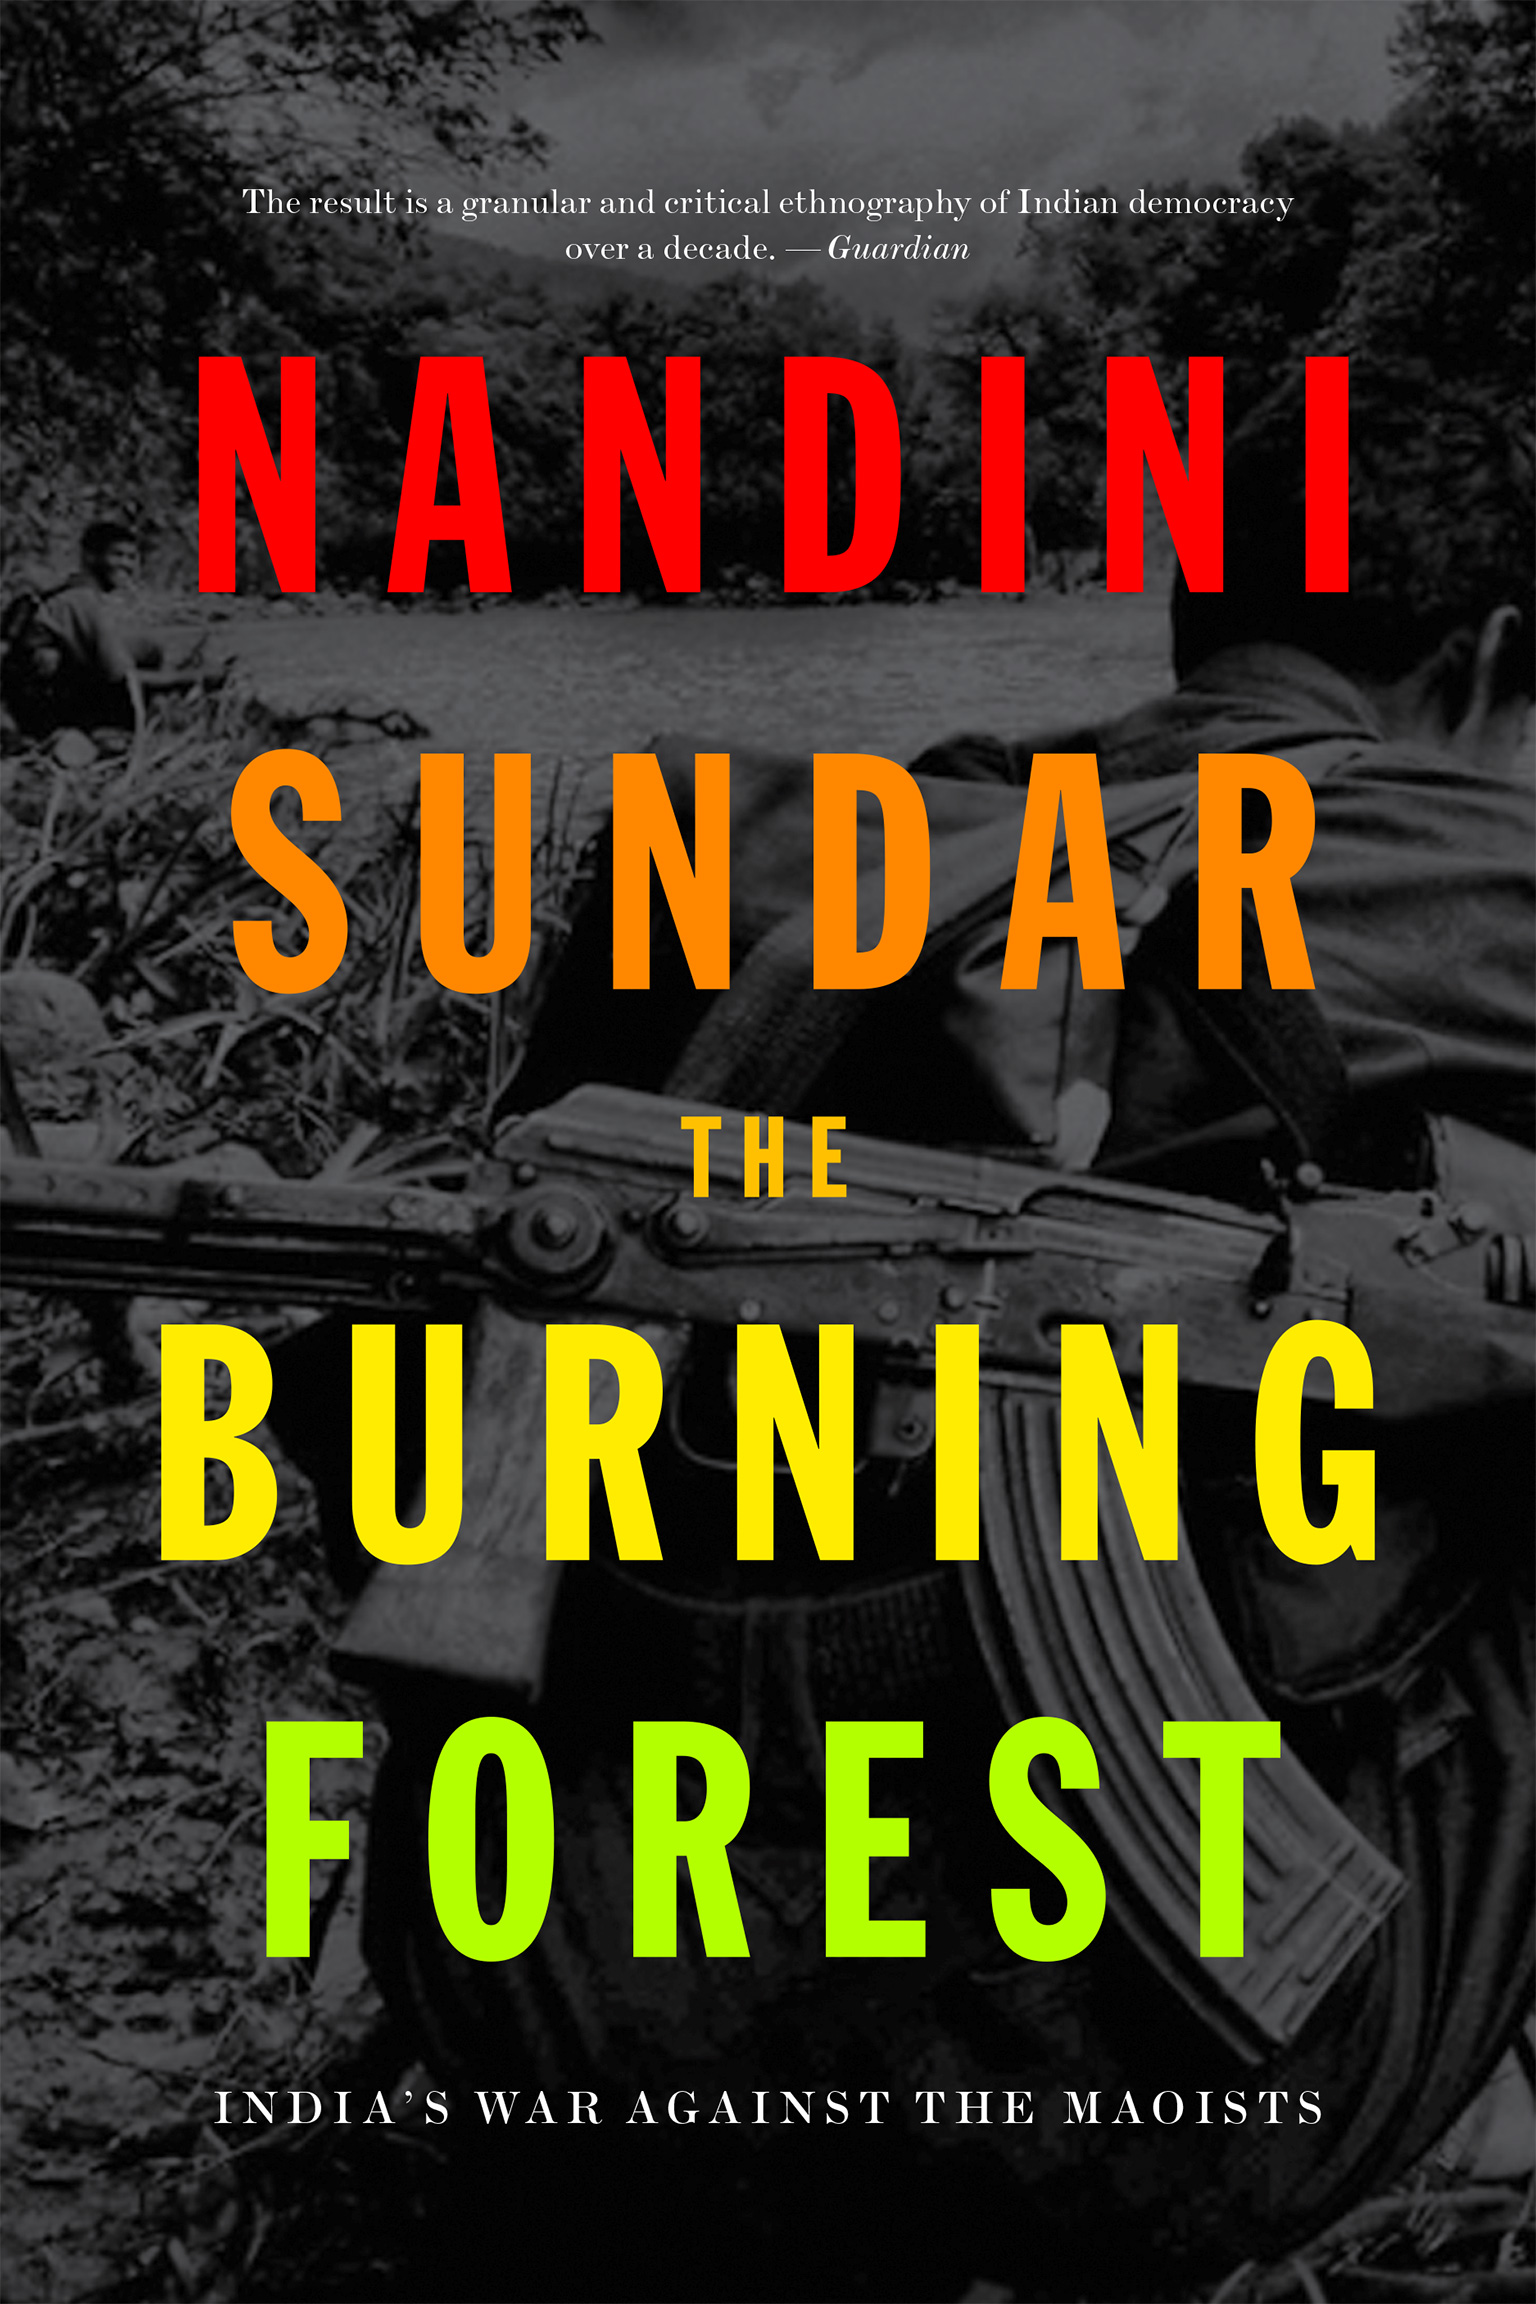 Sundar---burning-forest